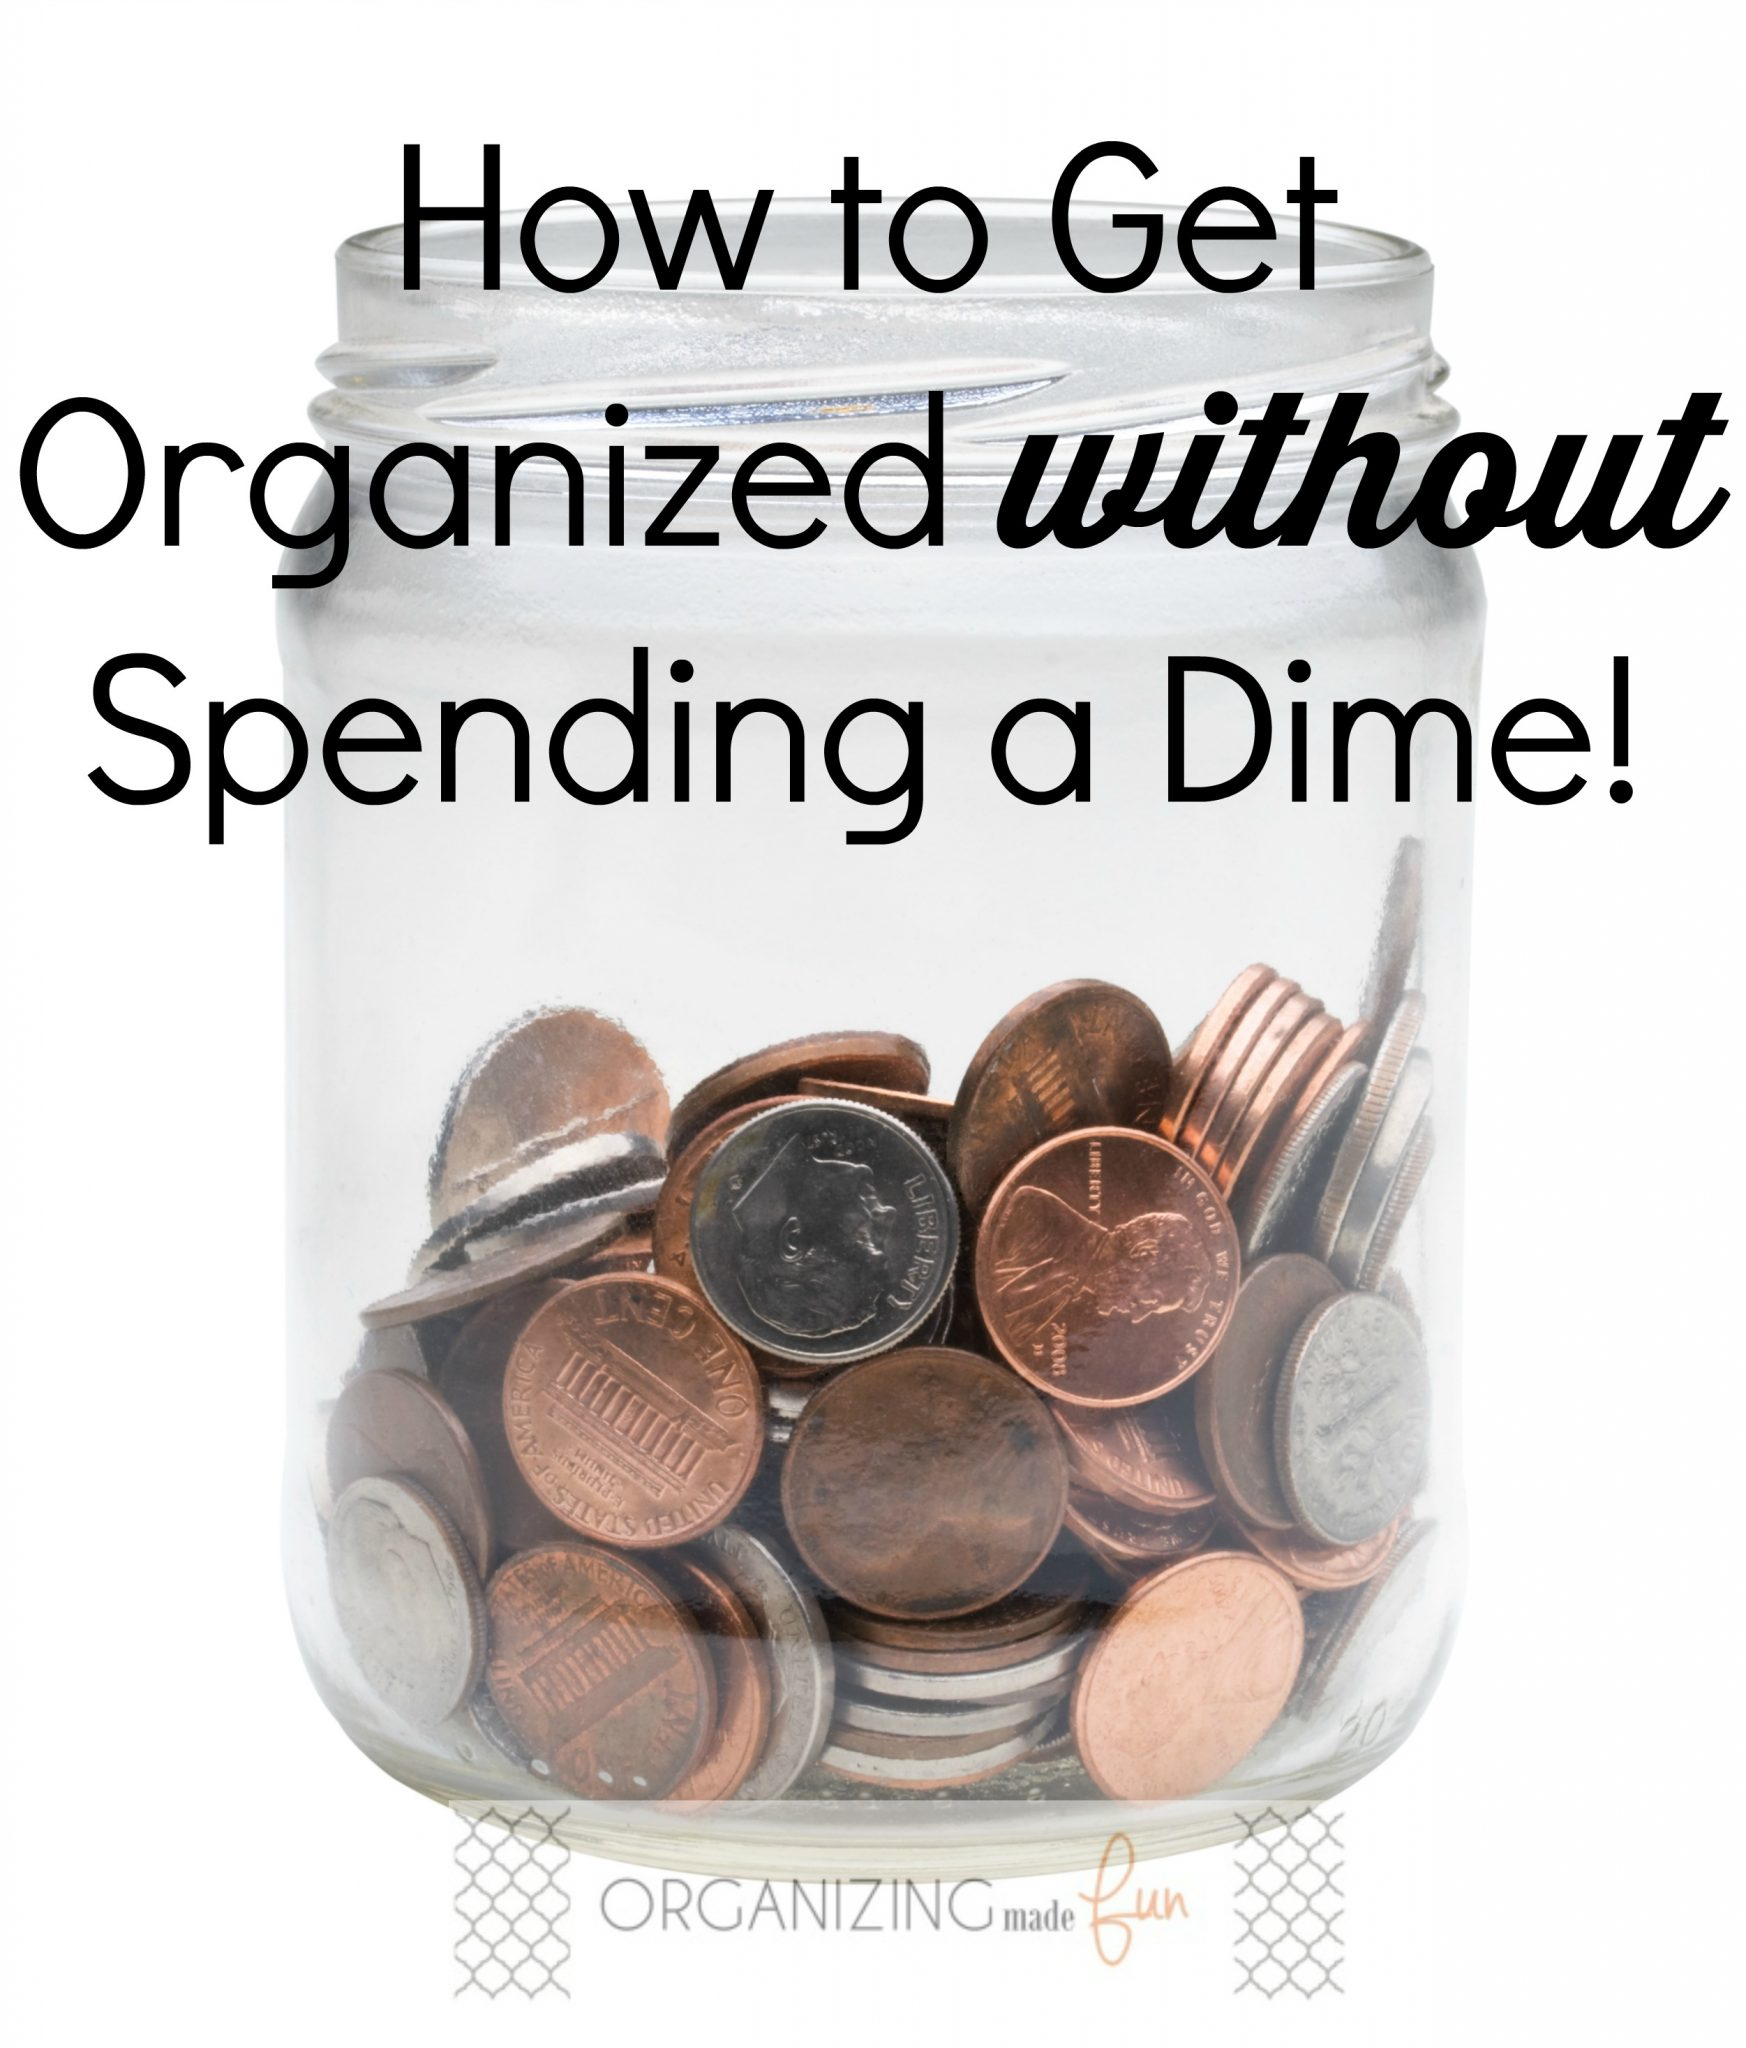 How to get organized without spending a dime!